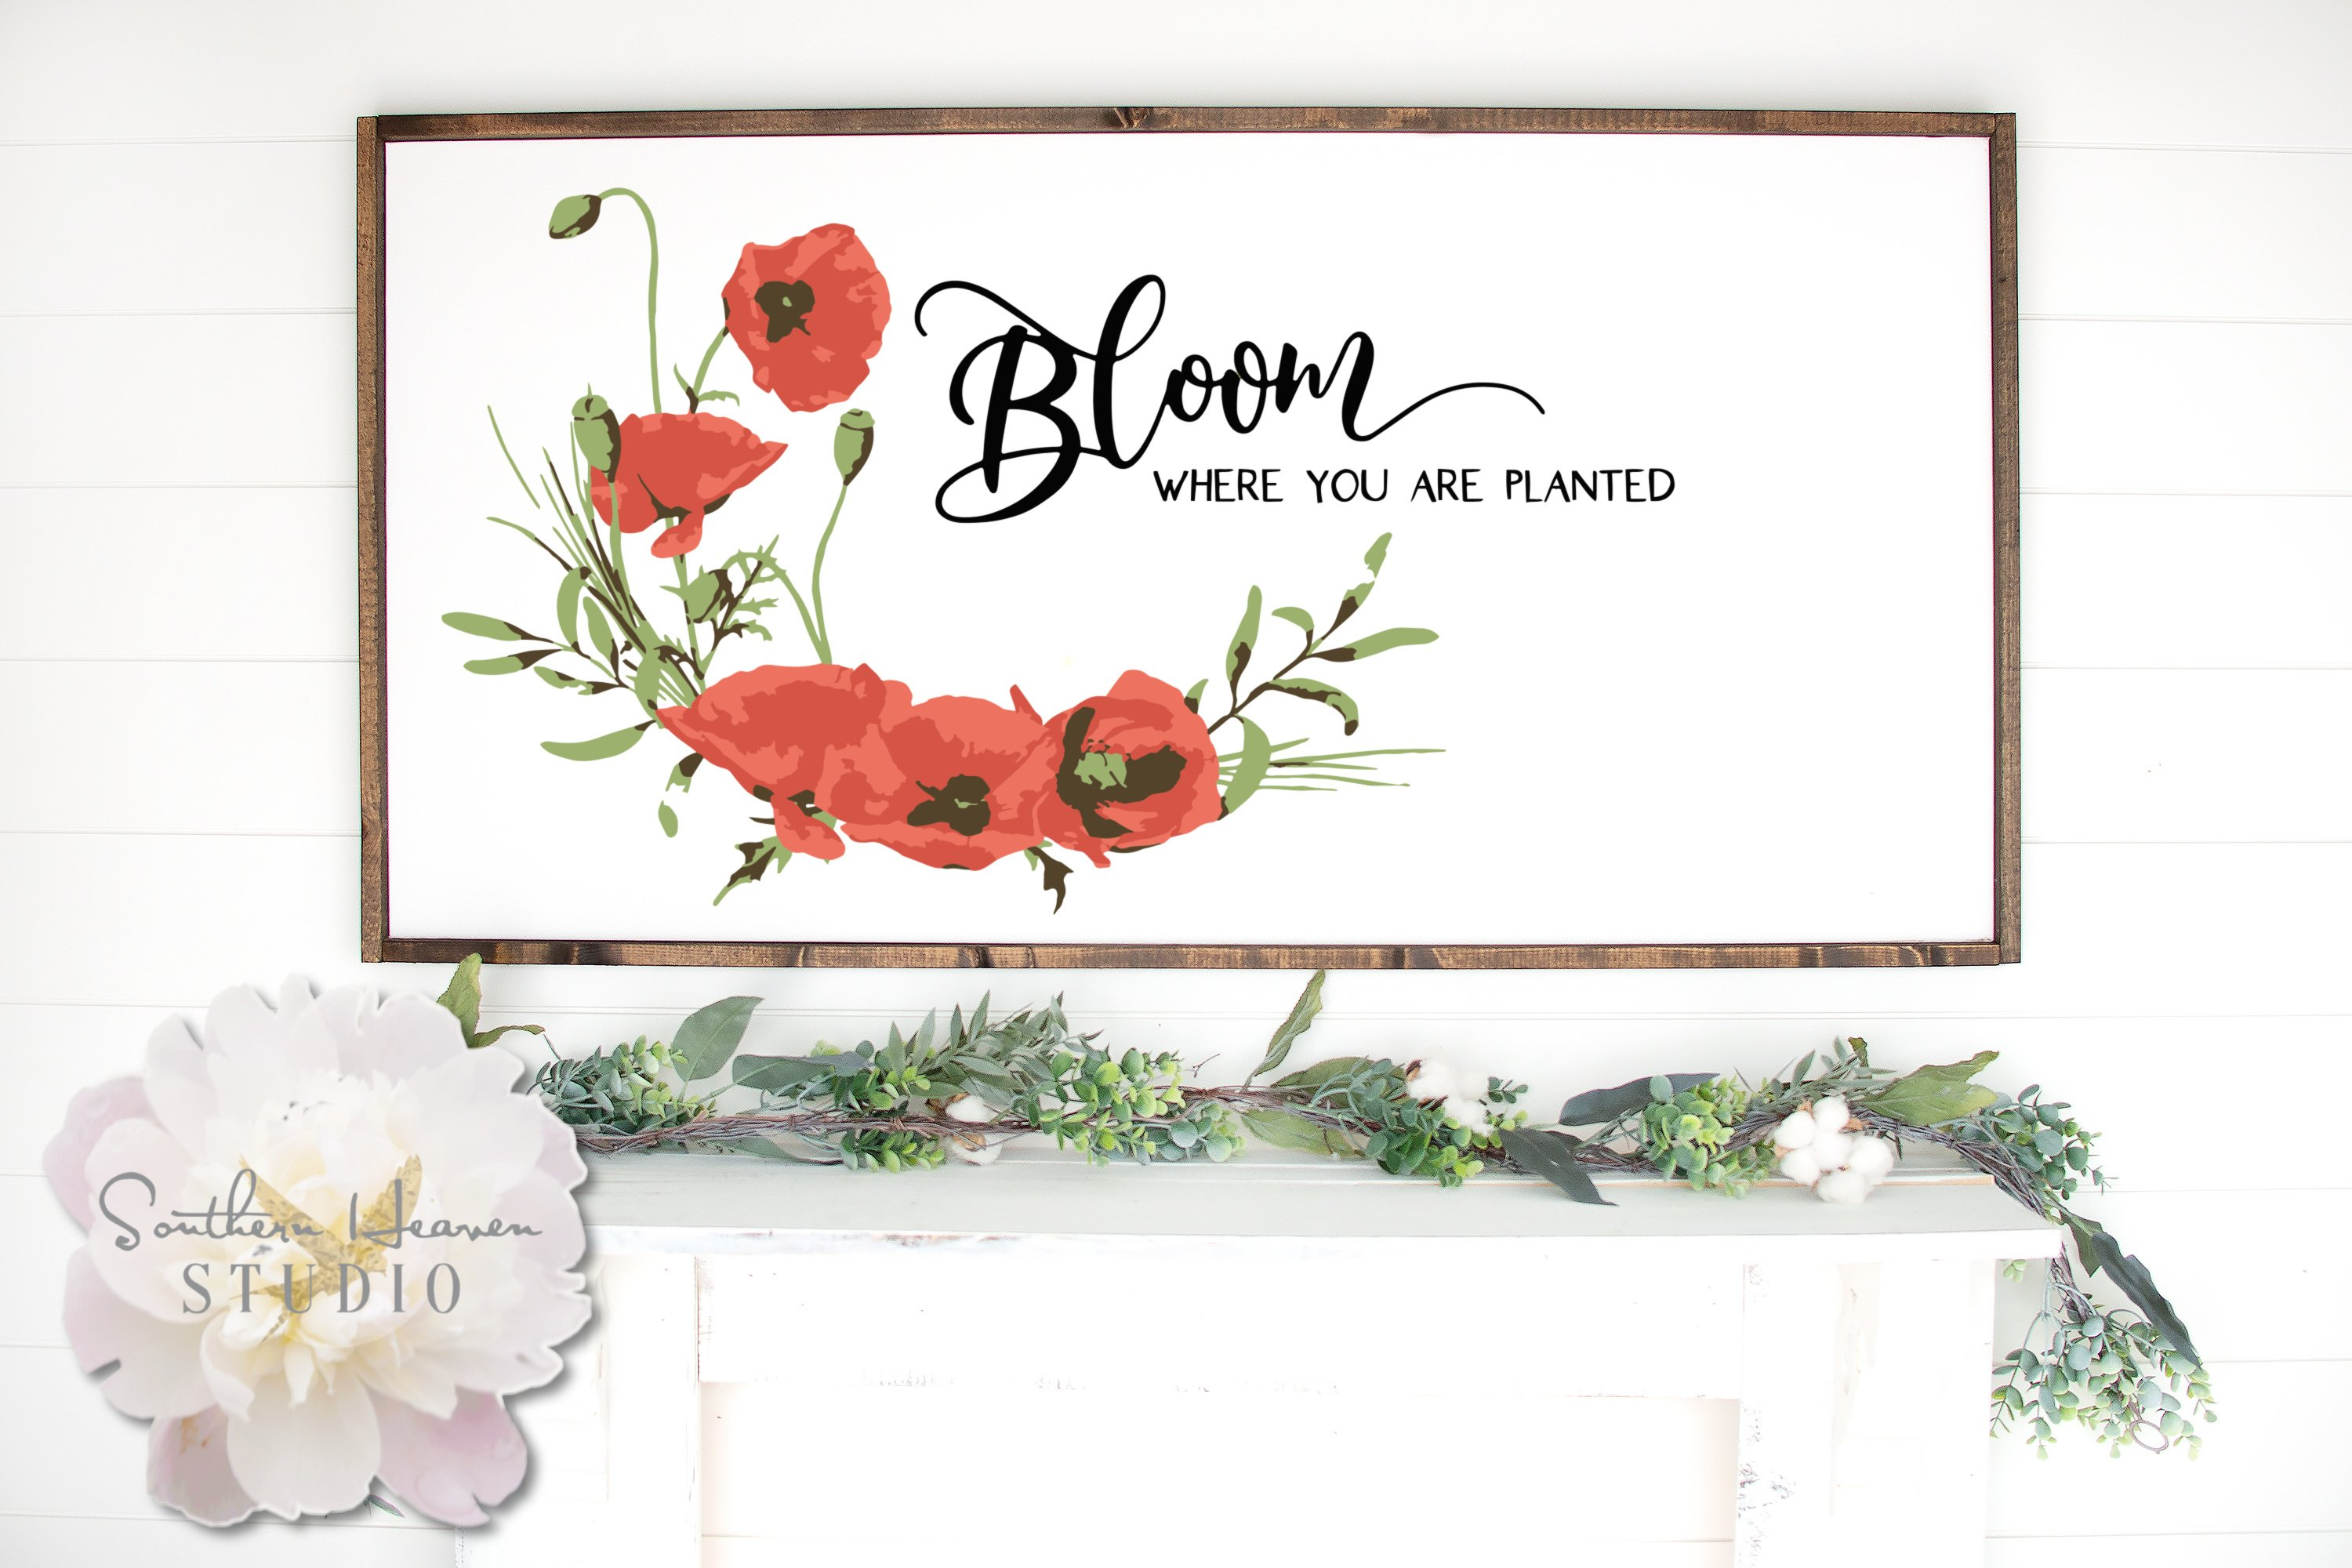 Bloom Where You Are Planted Svg Png Dxf And Eps 558295 Cut Files Design Bundles